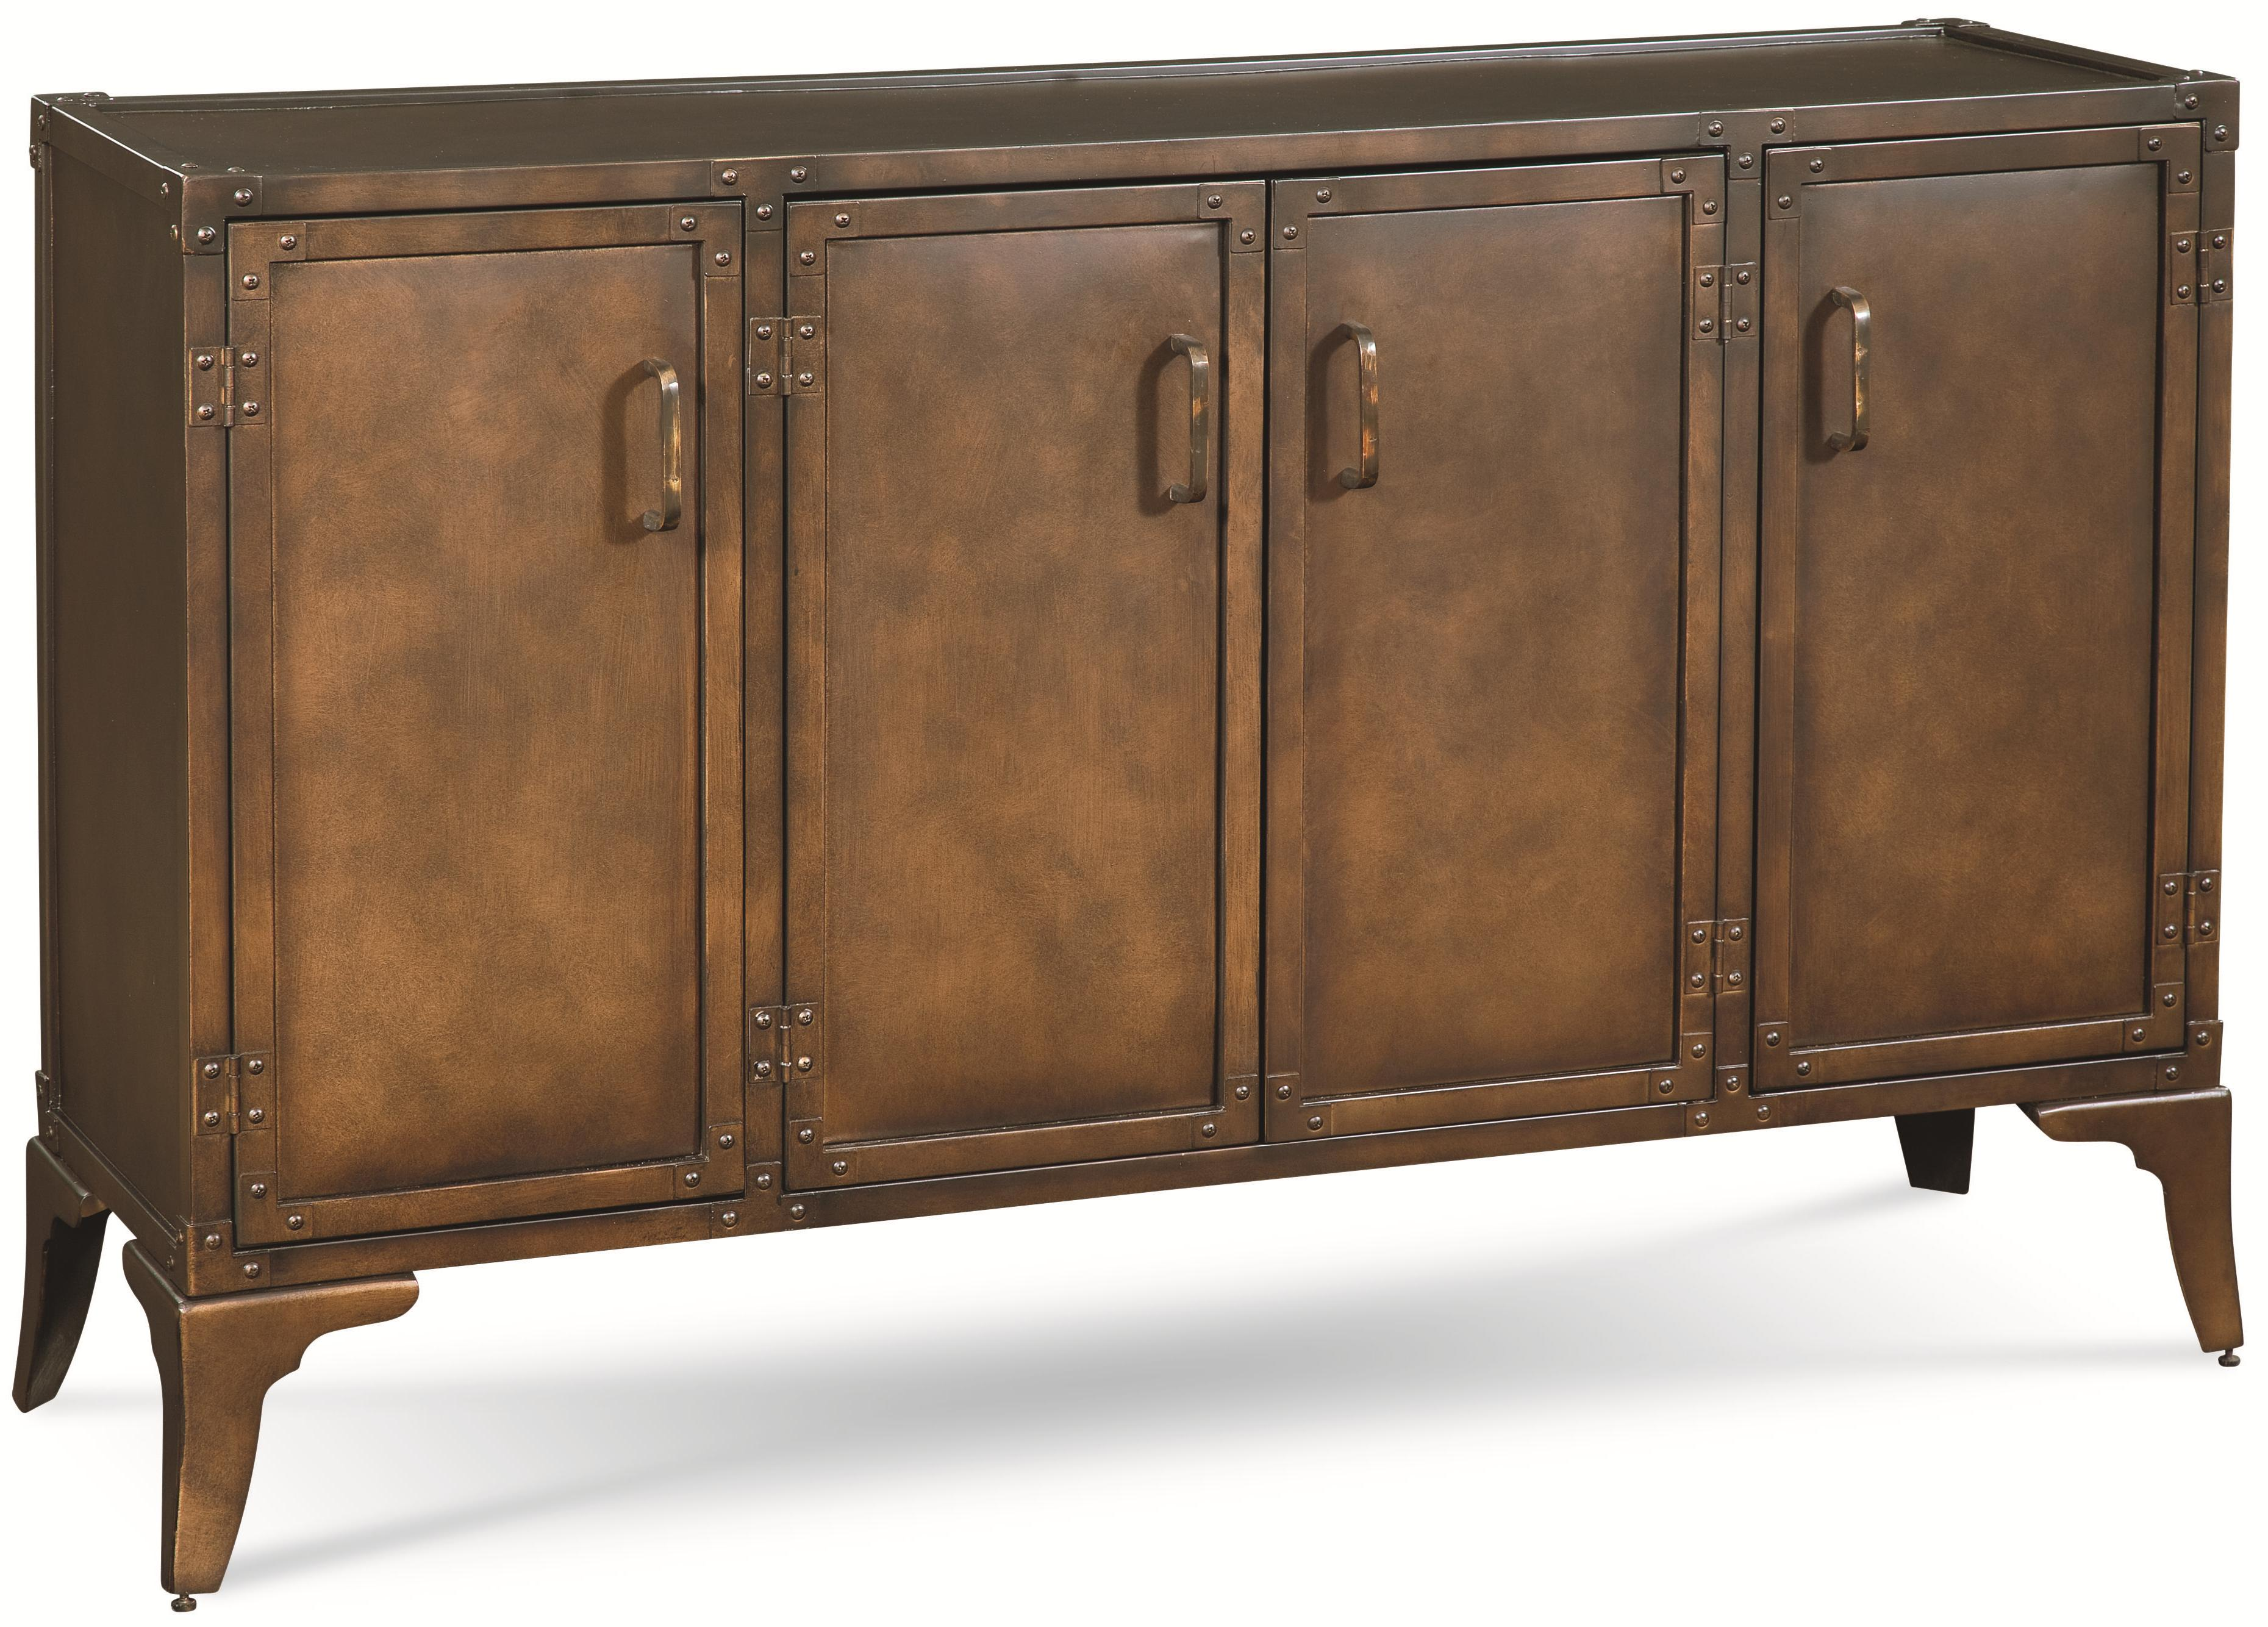 Thomasville® American Anthem Hall Console - Item Number: 82891-750